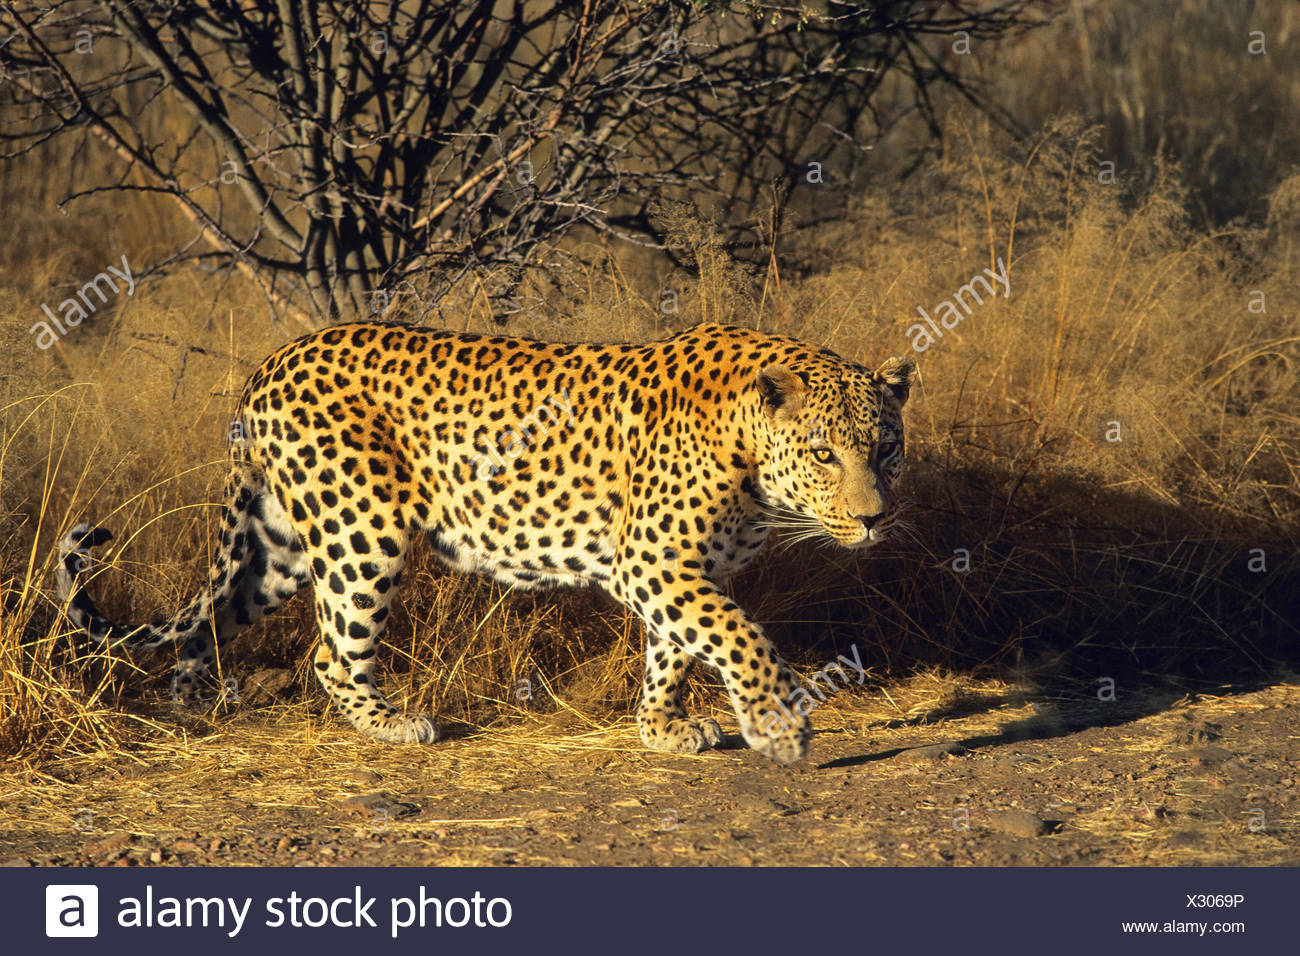 leopard (Panthera pardus), in evening light, Namibia - Stock Image